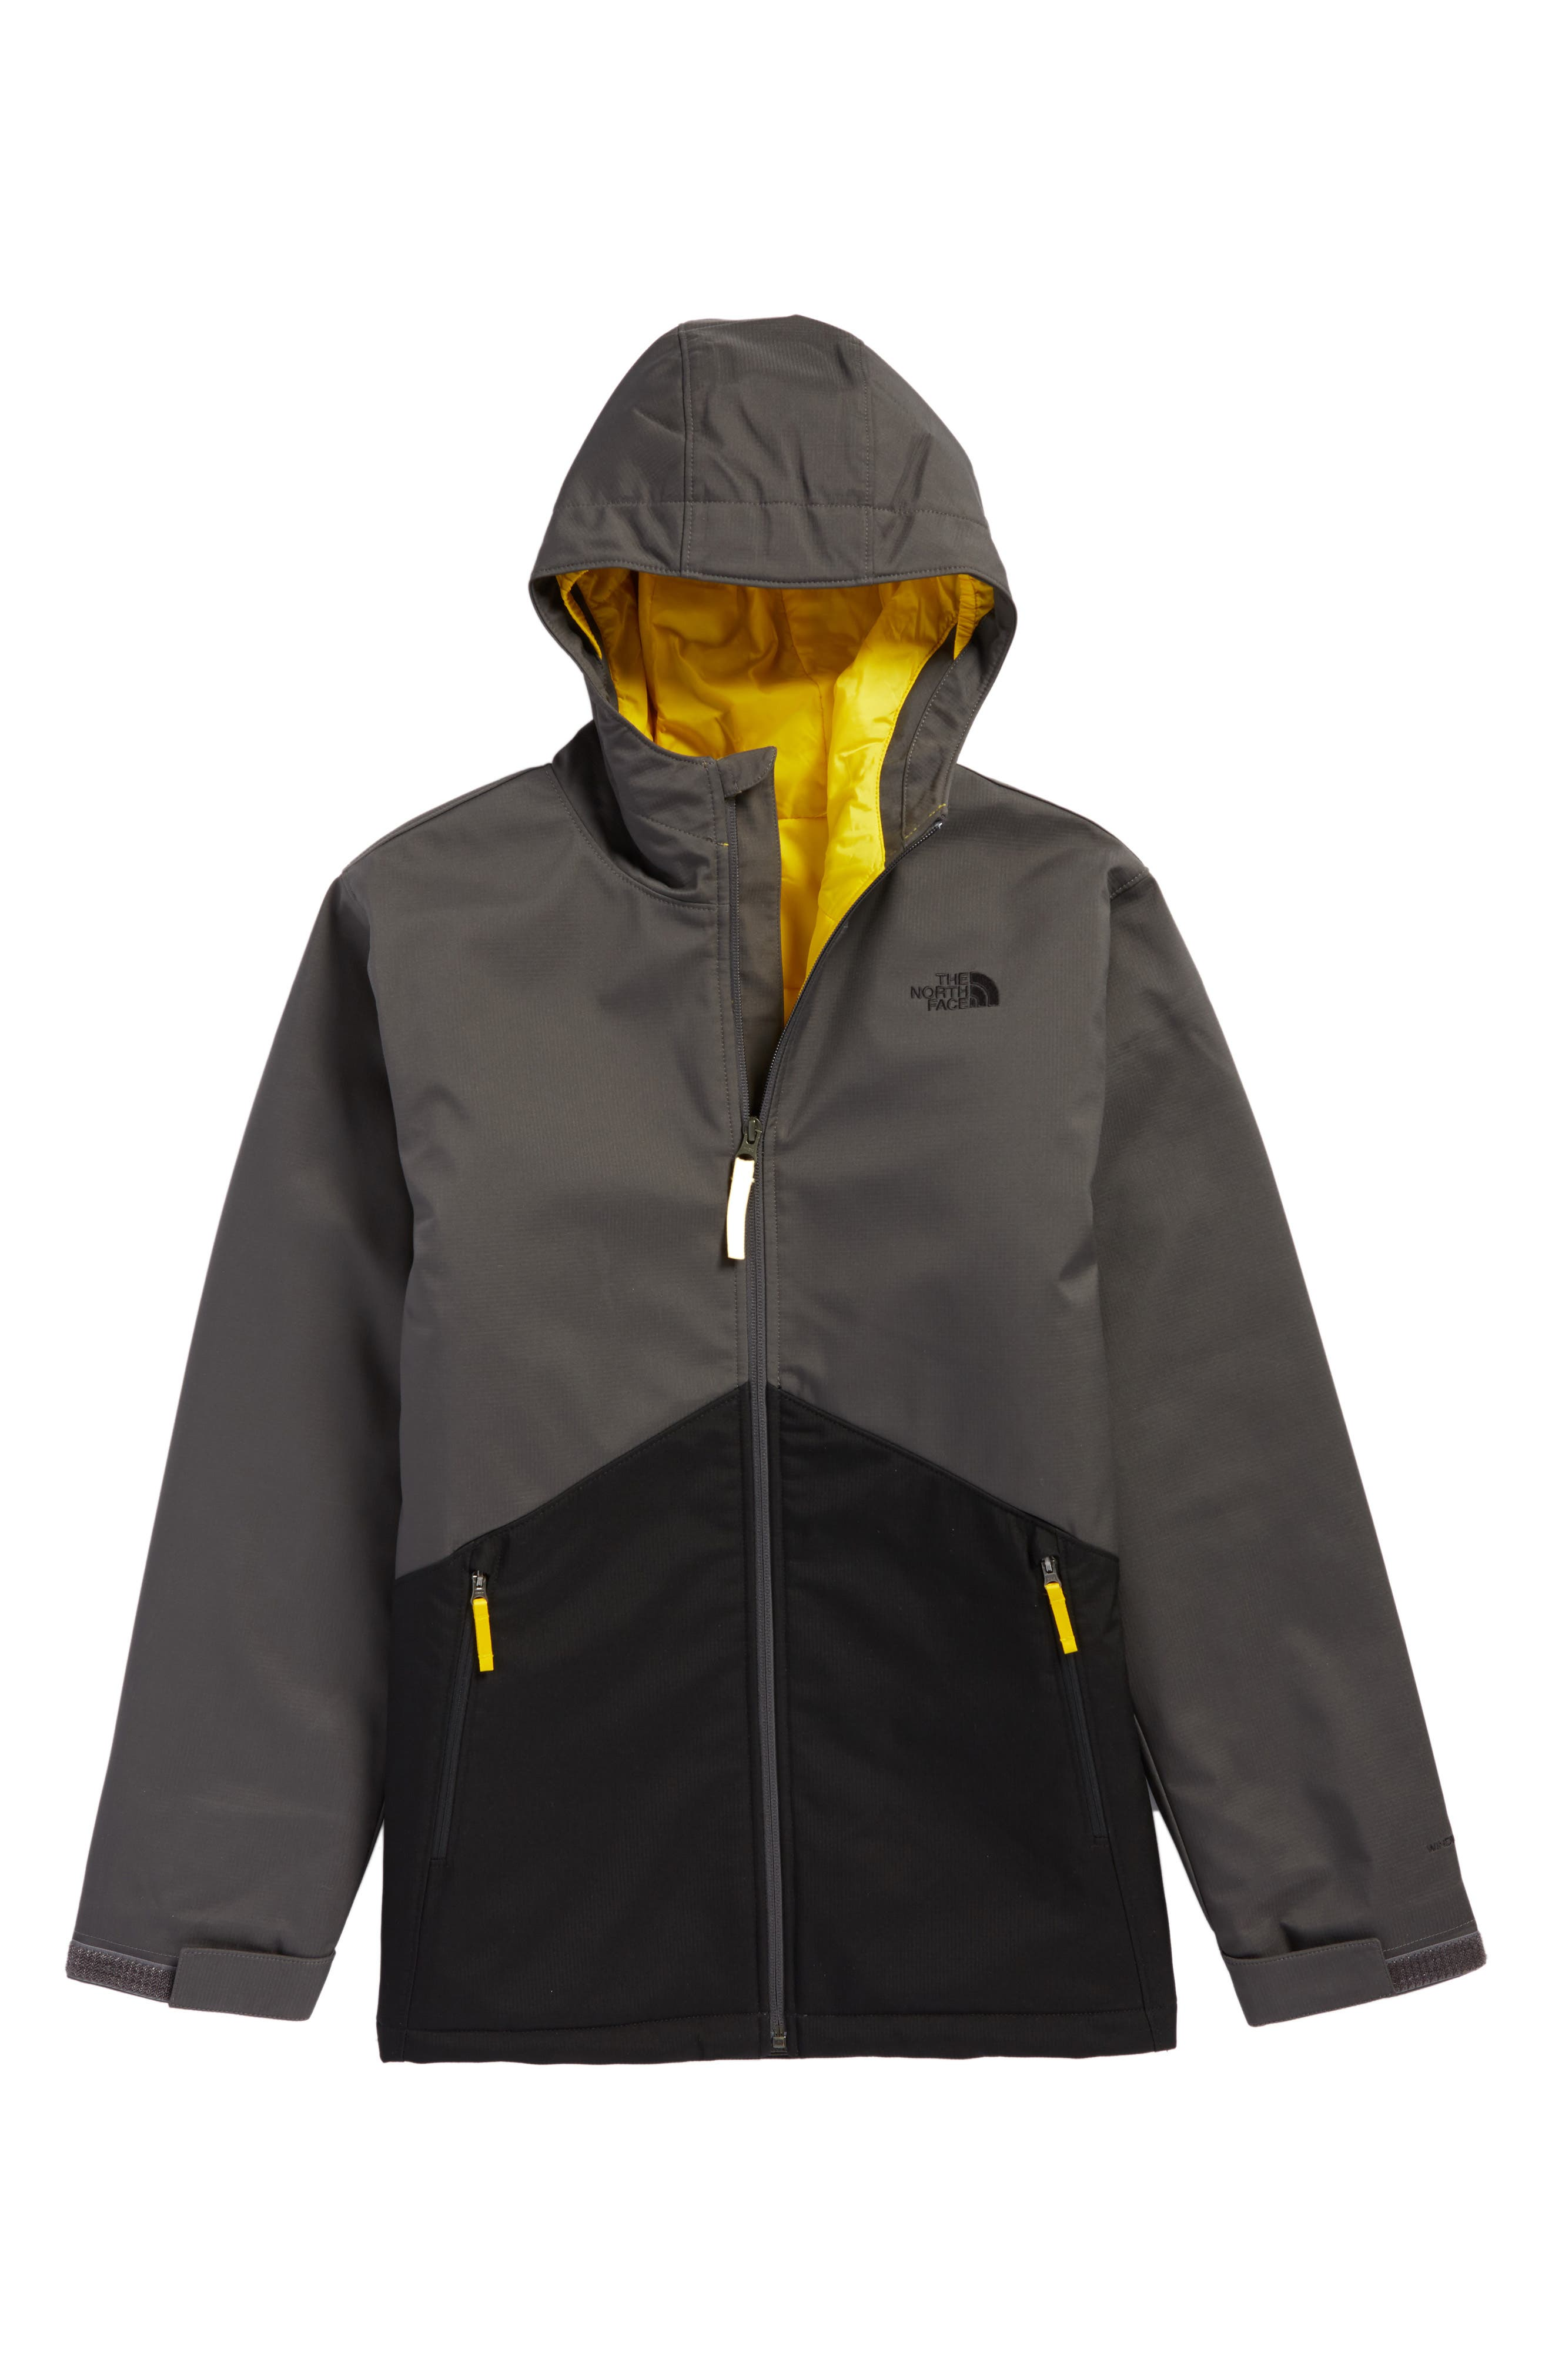 'Apex Elevation' Hooded Jacket,                         Main,                         color, Graphite Grey/ Canary Yellow